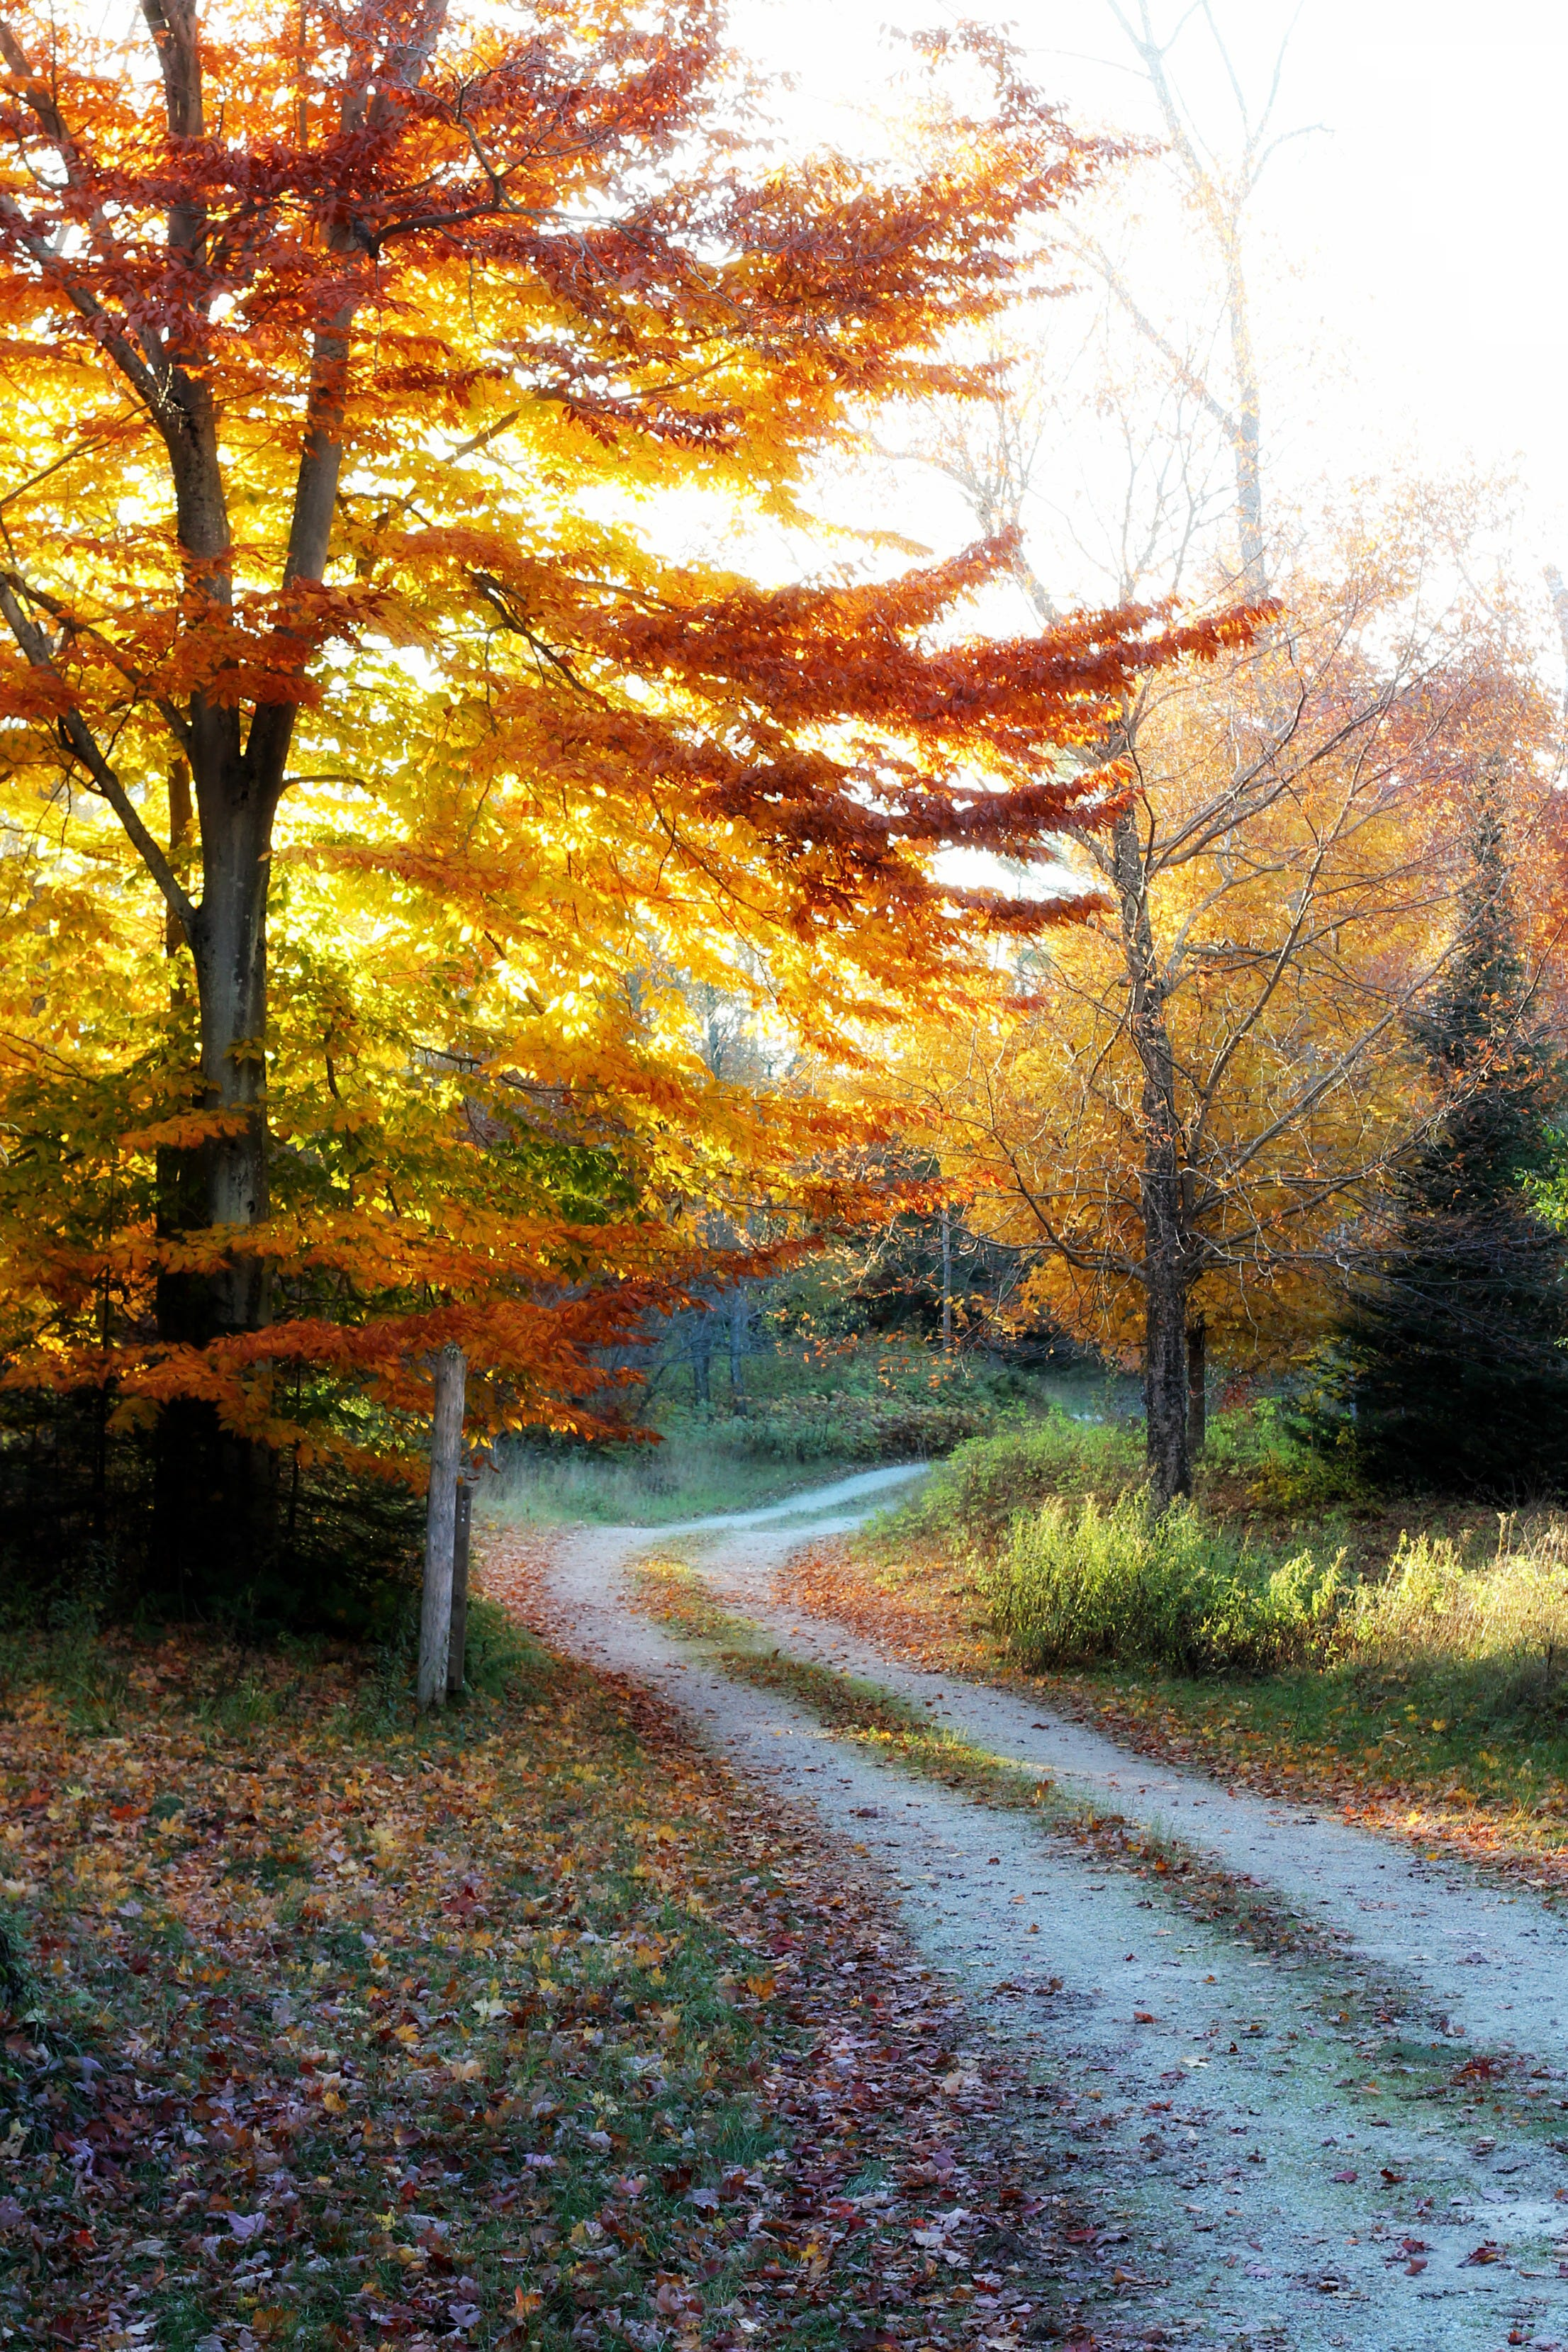 Hazy light peeks through fall colors on a path along Wisconsin Rustic Road 77 in Sturgeon Bay. Door County's five Rustic Roads offer a less-traveled way to check out fall colors.